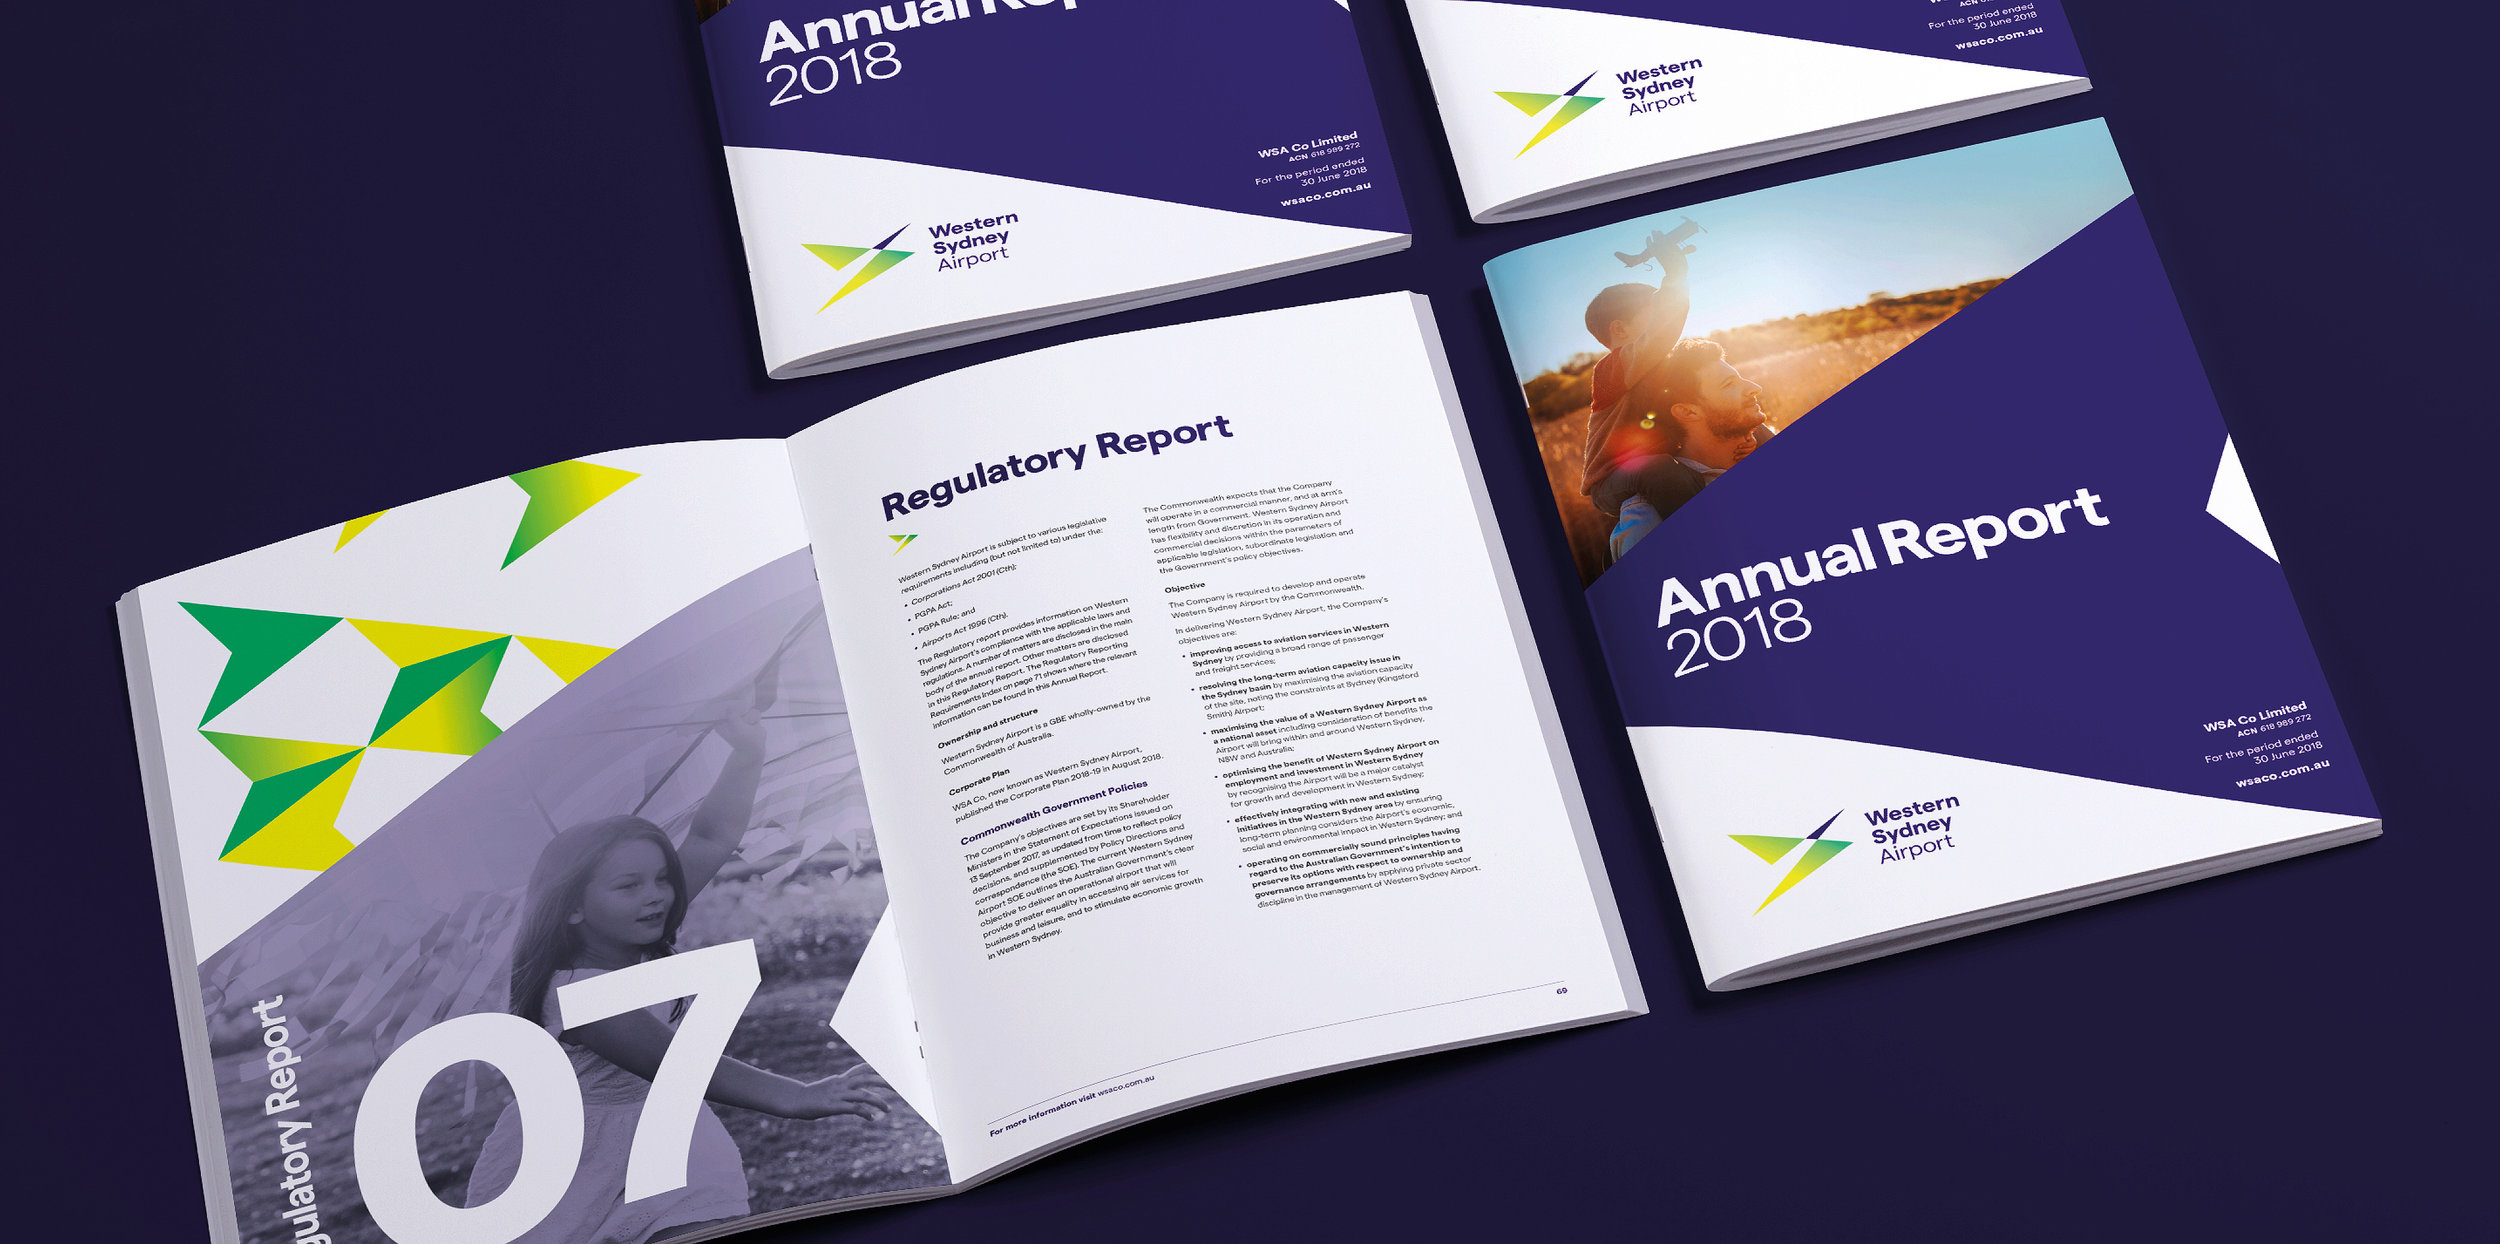 Project Overview - Annual ReportEvent BrandingA4, A5 BrochuresTable Graphics, BannersAnimation of existing LogoVideo Branding GraphicsBillboards